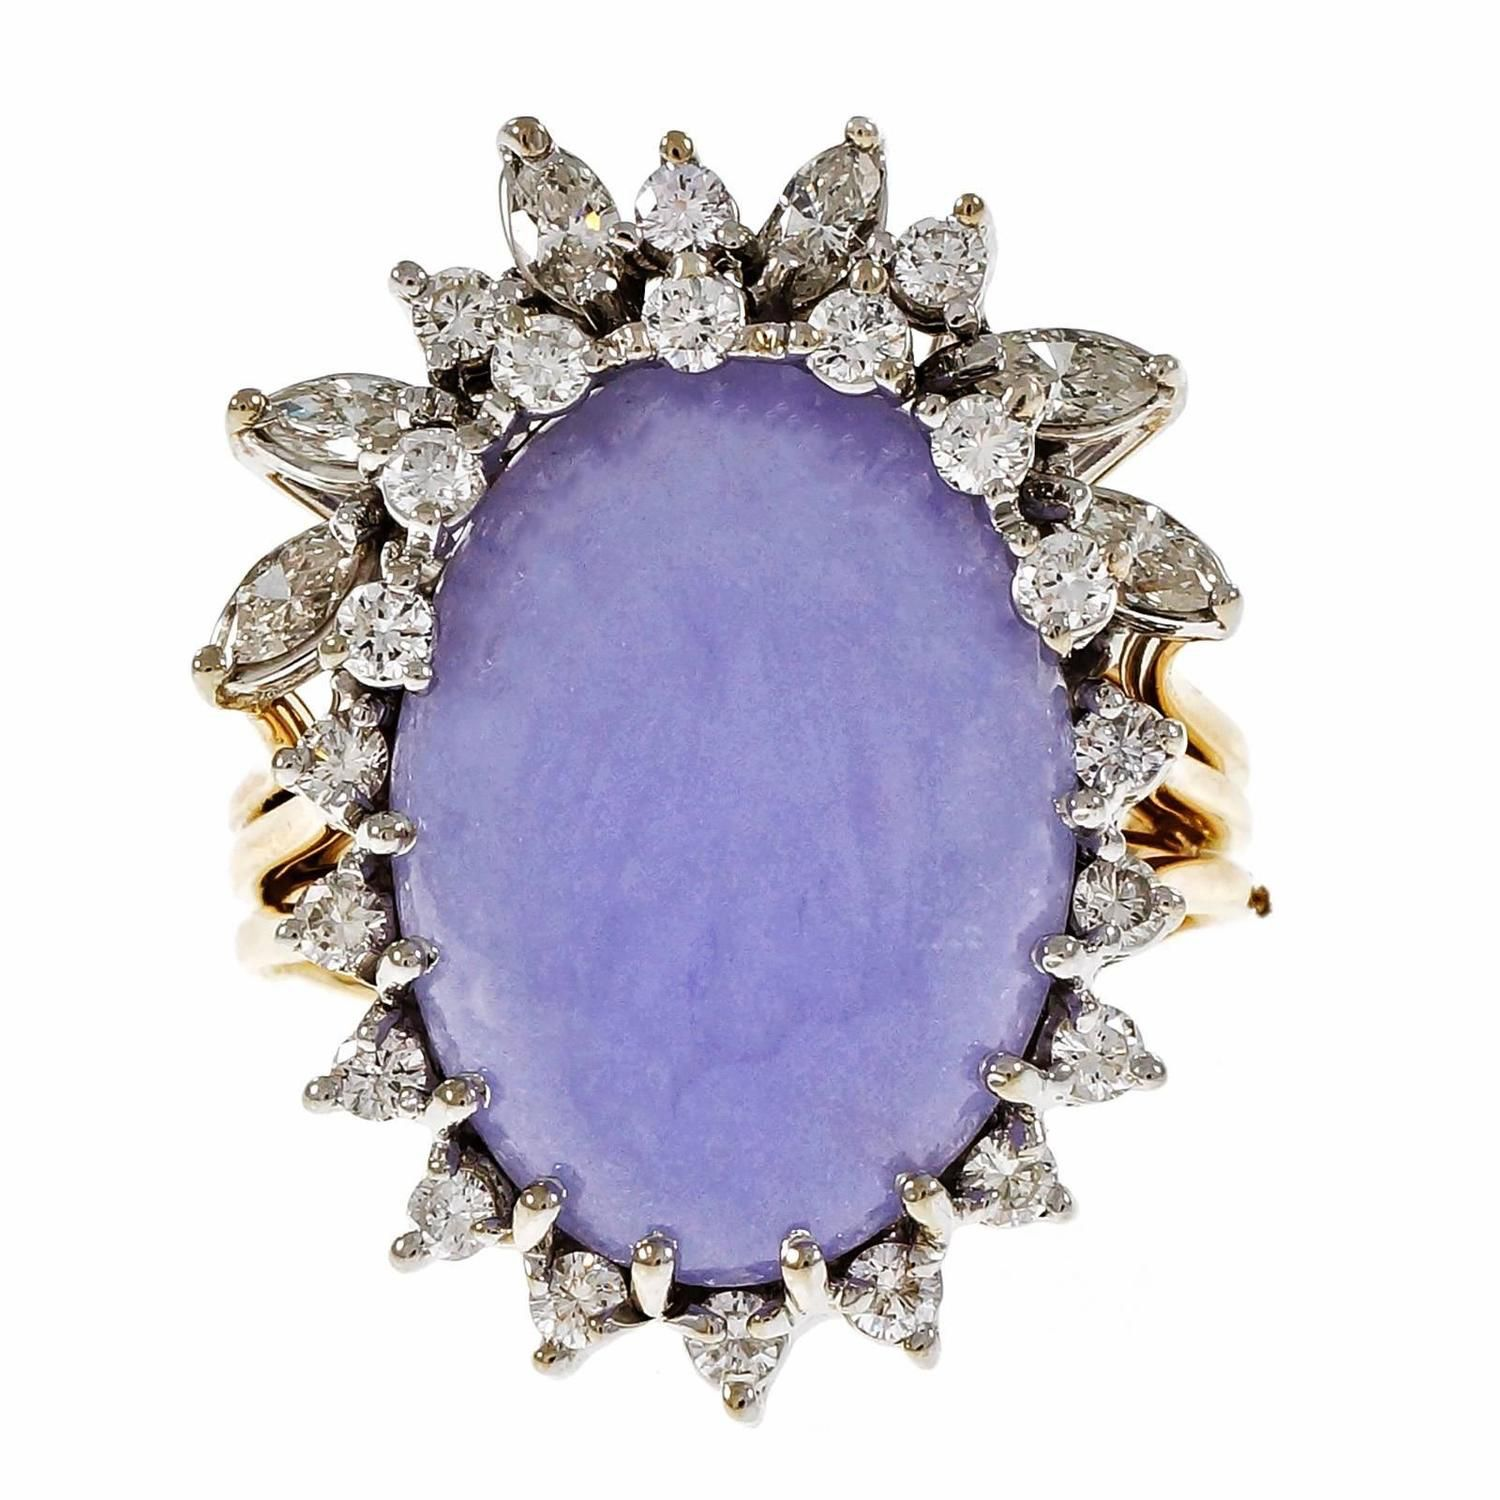 Purple Lavender Jadeite Jade Diamond Gold Cocktail Ring   See more rare vintage Cocktail Rings at https://www.1stdibs.com/jewelry/rings/cocktail-rings